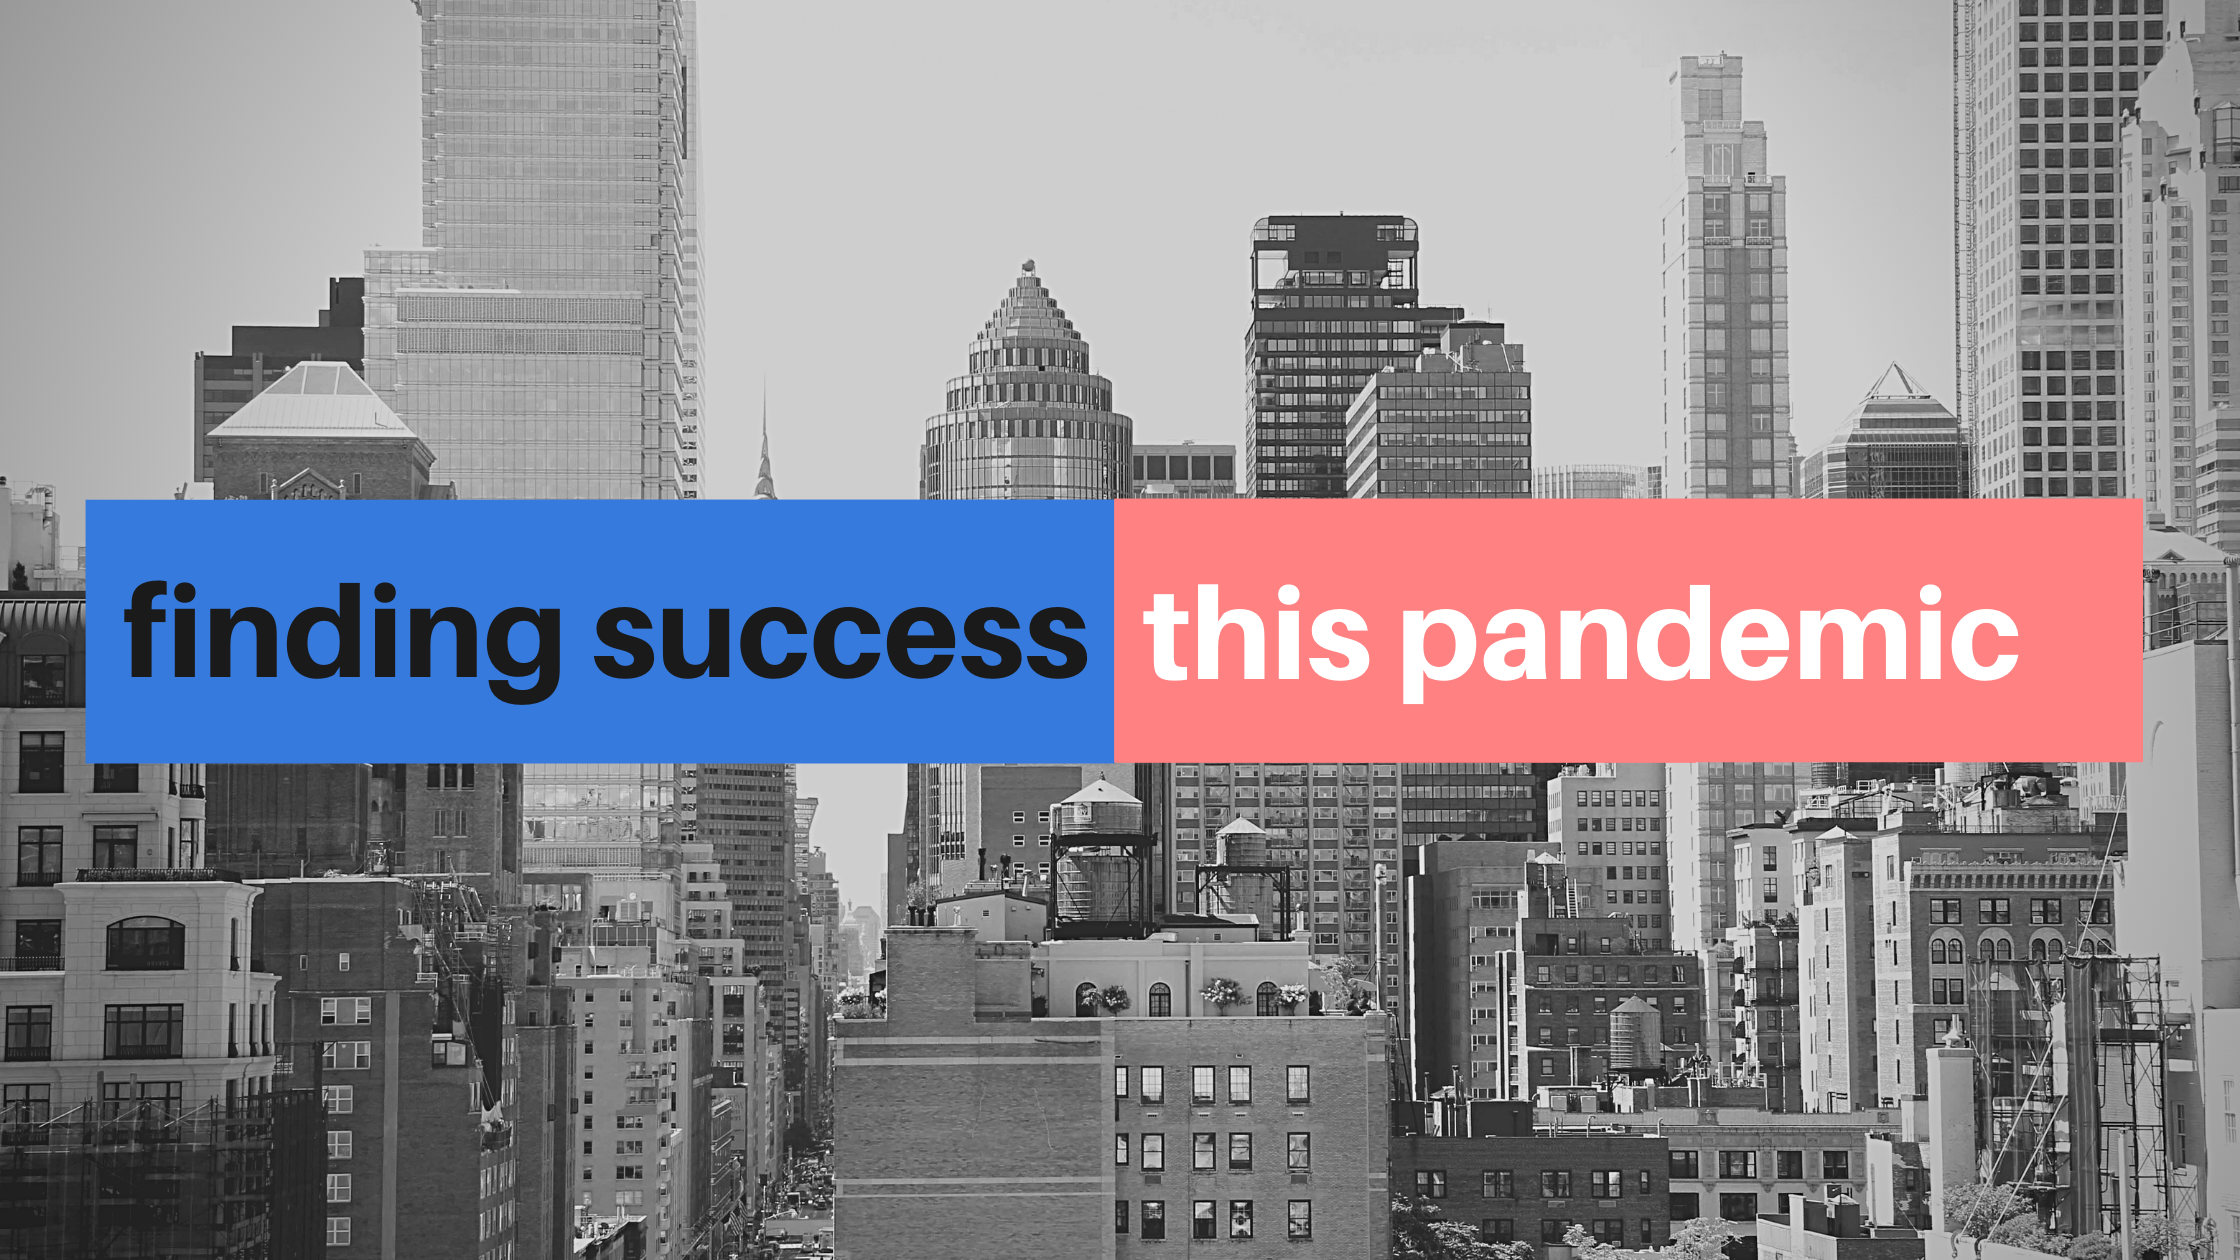 buildings in front of finding success this pandemic text